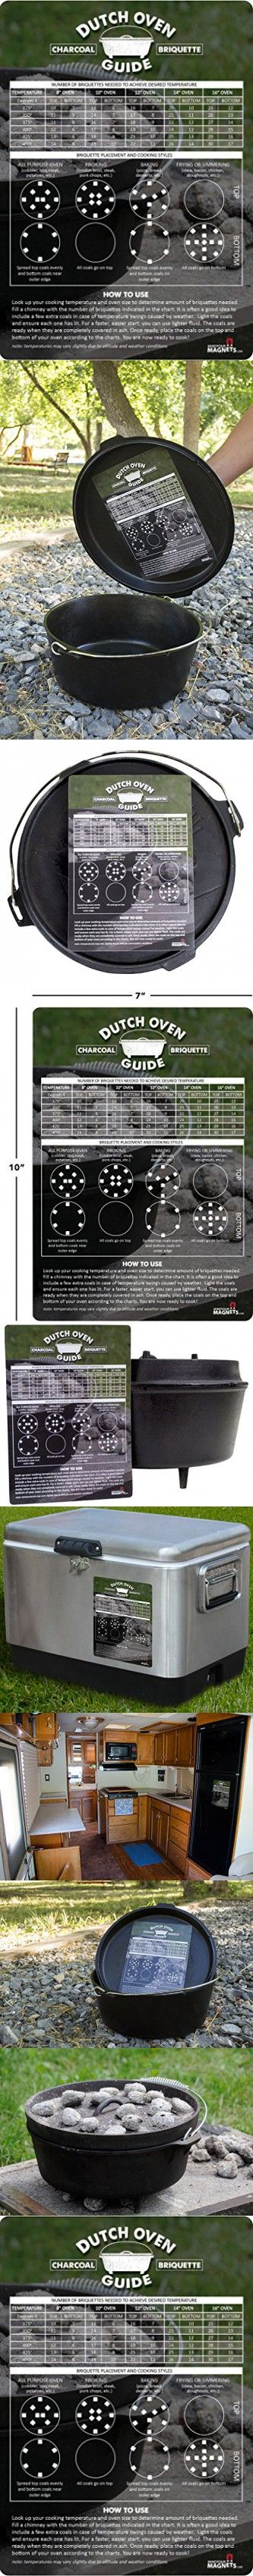 Dutch Oven Charcoal Briquettes Magnetic Cheat Sheet / Briquette Temperature Conversion Chart - The Perfect Fridge Magnet to Add To Your Dutch Oven Cookbook, Camping Gear and RV Accessories!